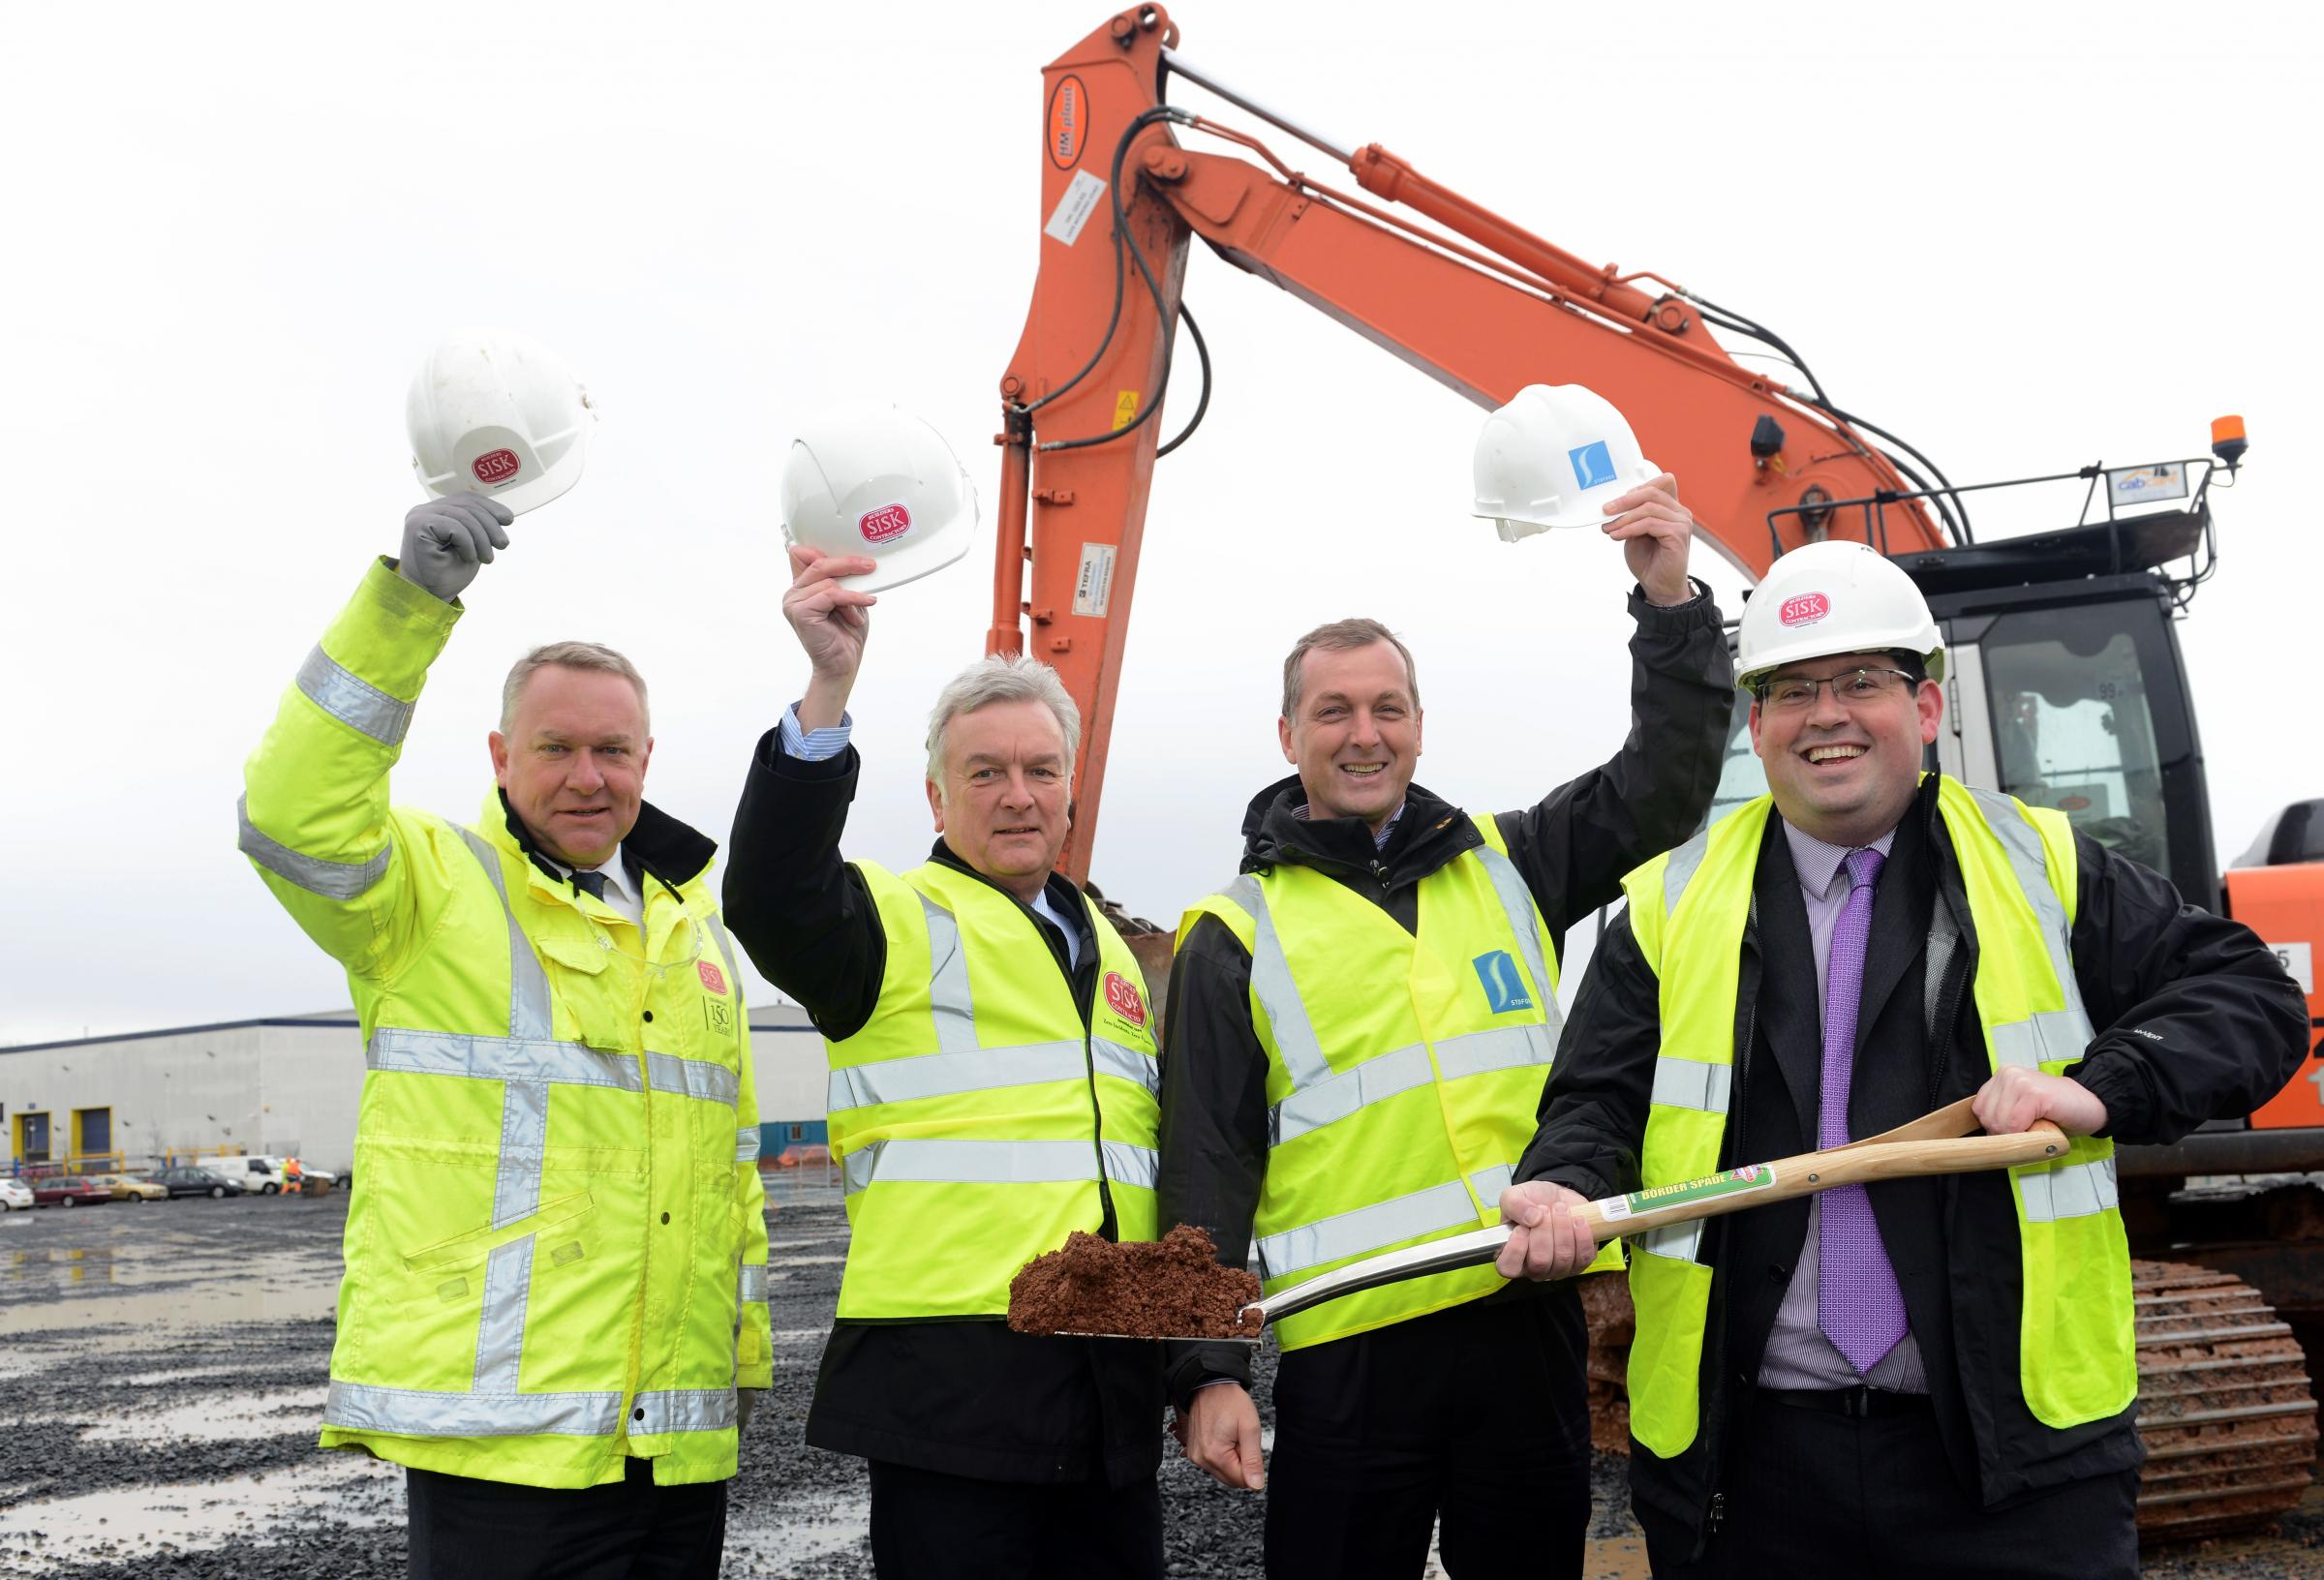 Kim Shevyn from John Sisk & Son with Stephen Yates from AXA, David Brown from Stoford, and John Upperton from Vax cutting the first sod of the new building. SP